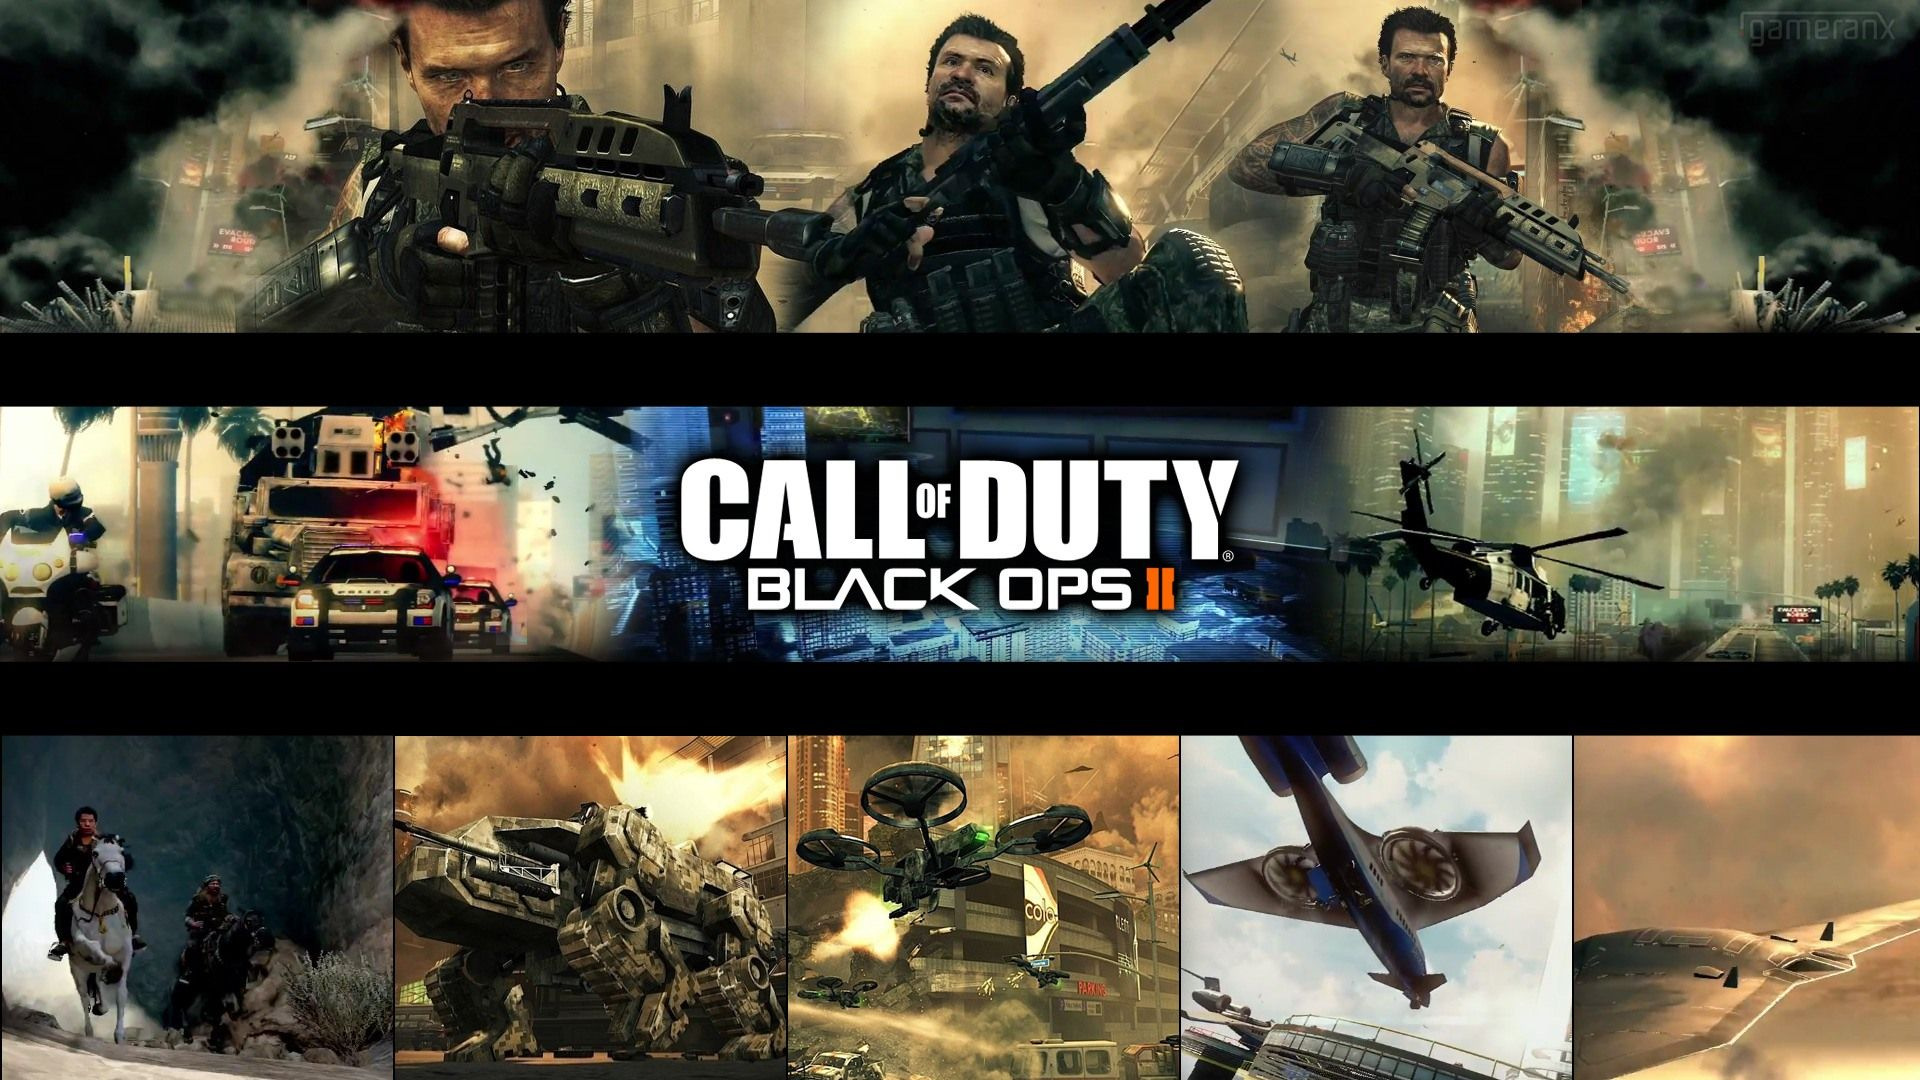 Call of duty black ops 2 wallpapers hd 13